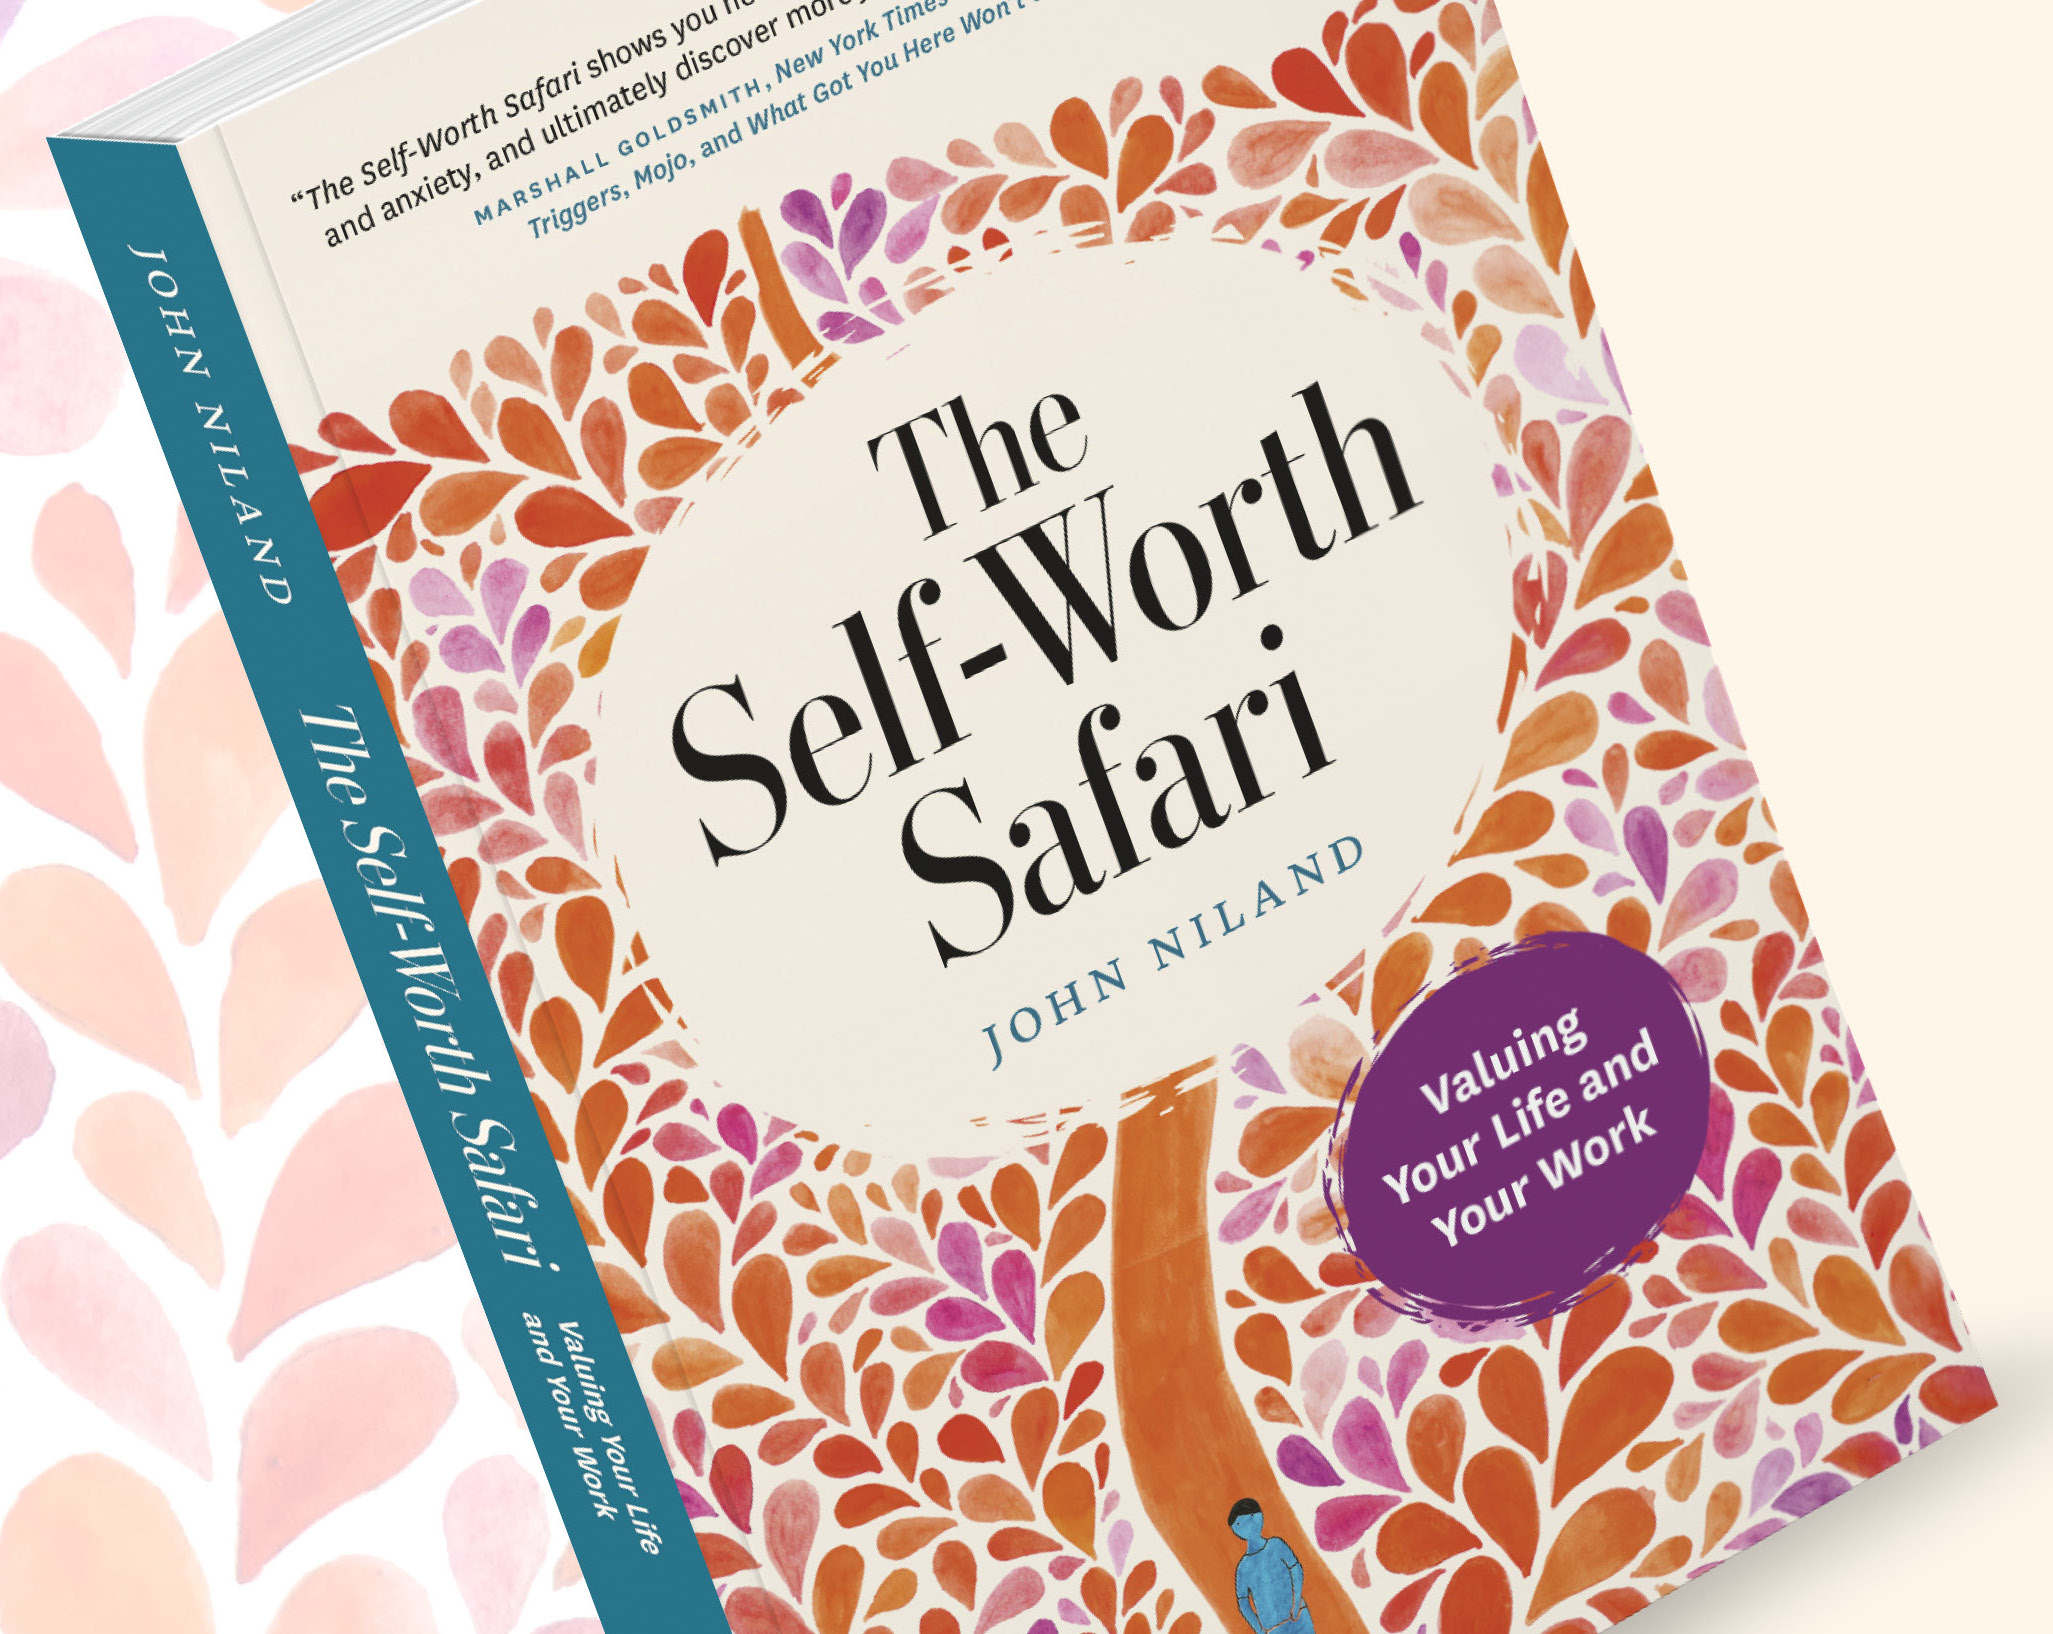 Book on Self Worth